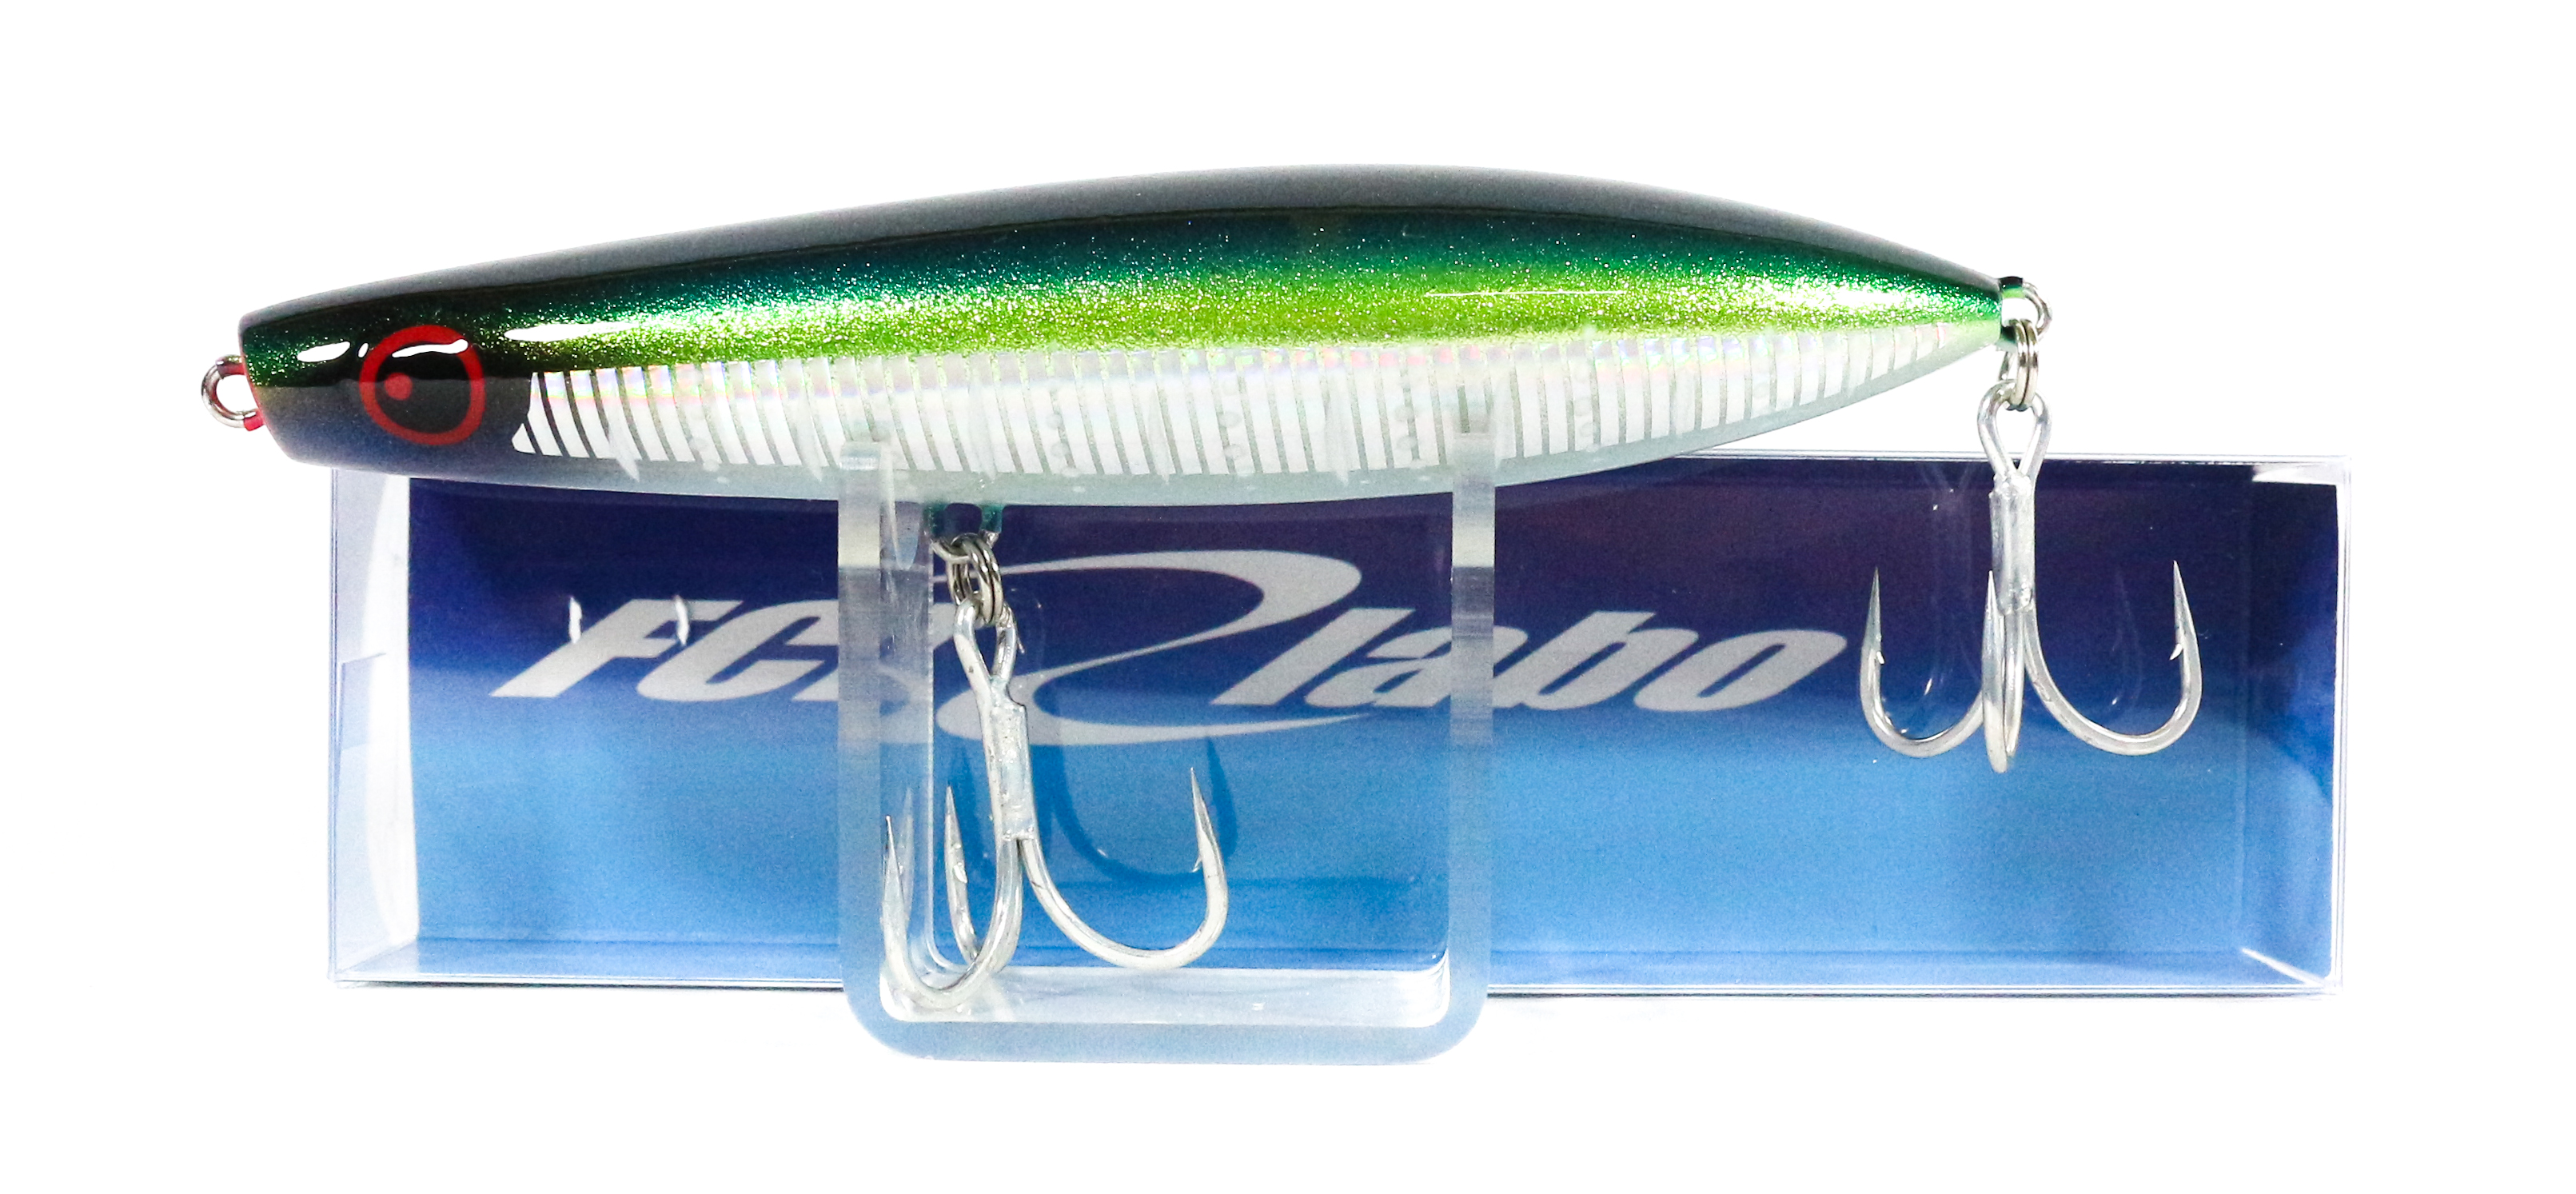 FCL Labo Popper Pencil Nasup 130 Floating Lure 33 grams TUNA (4511)